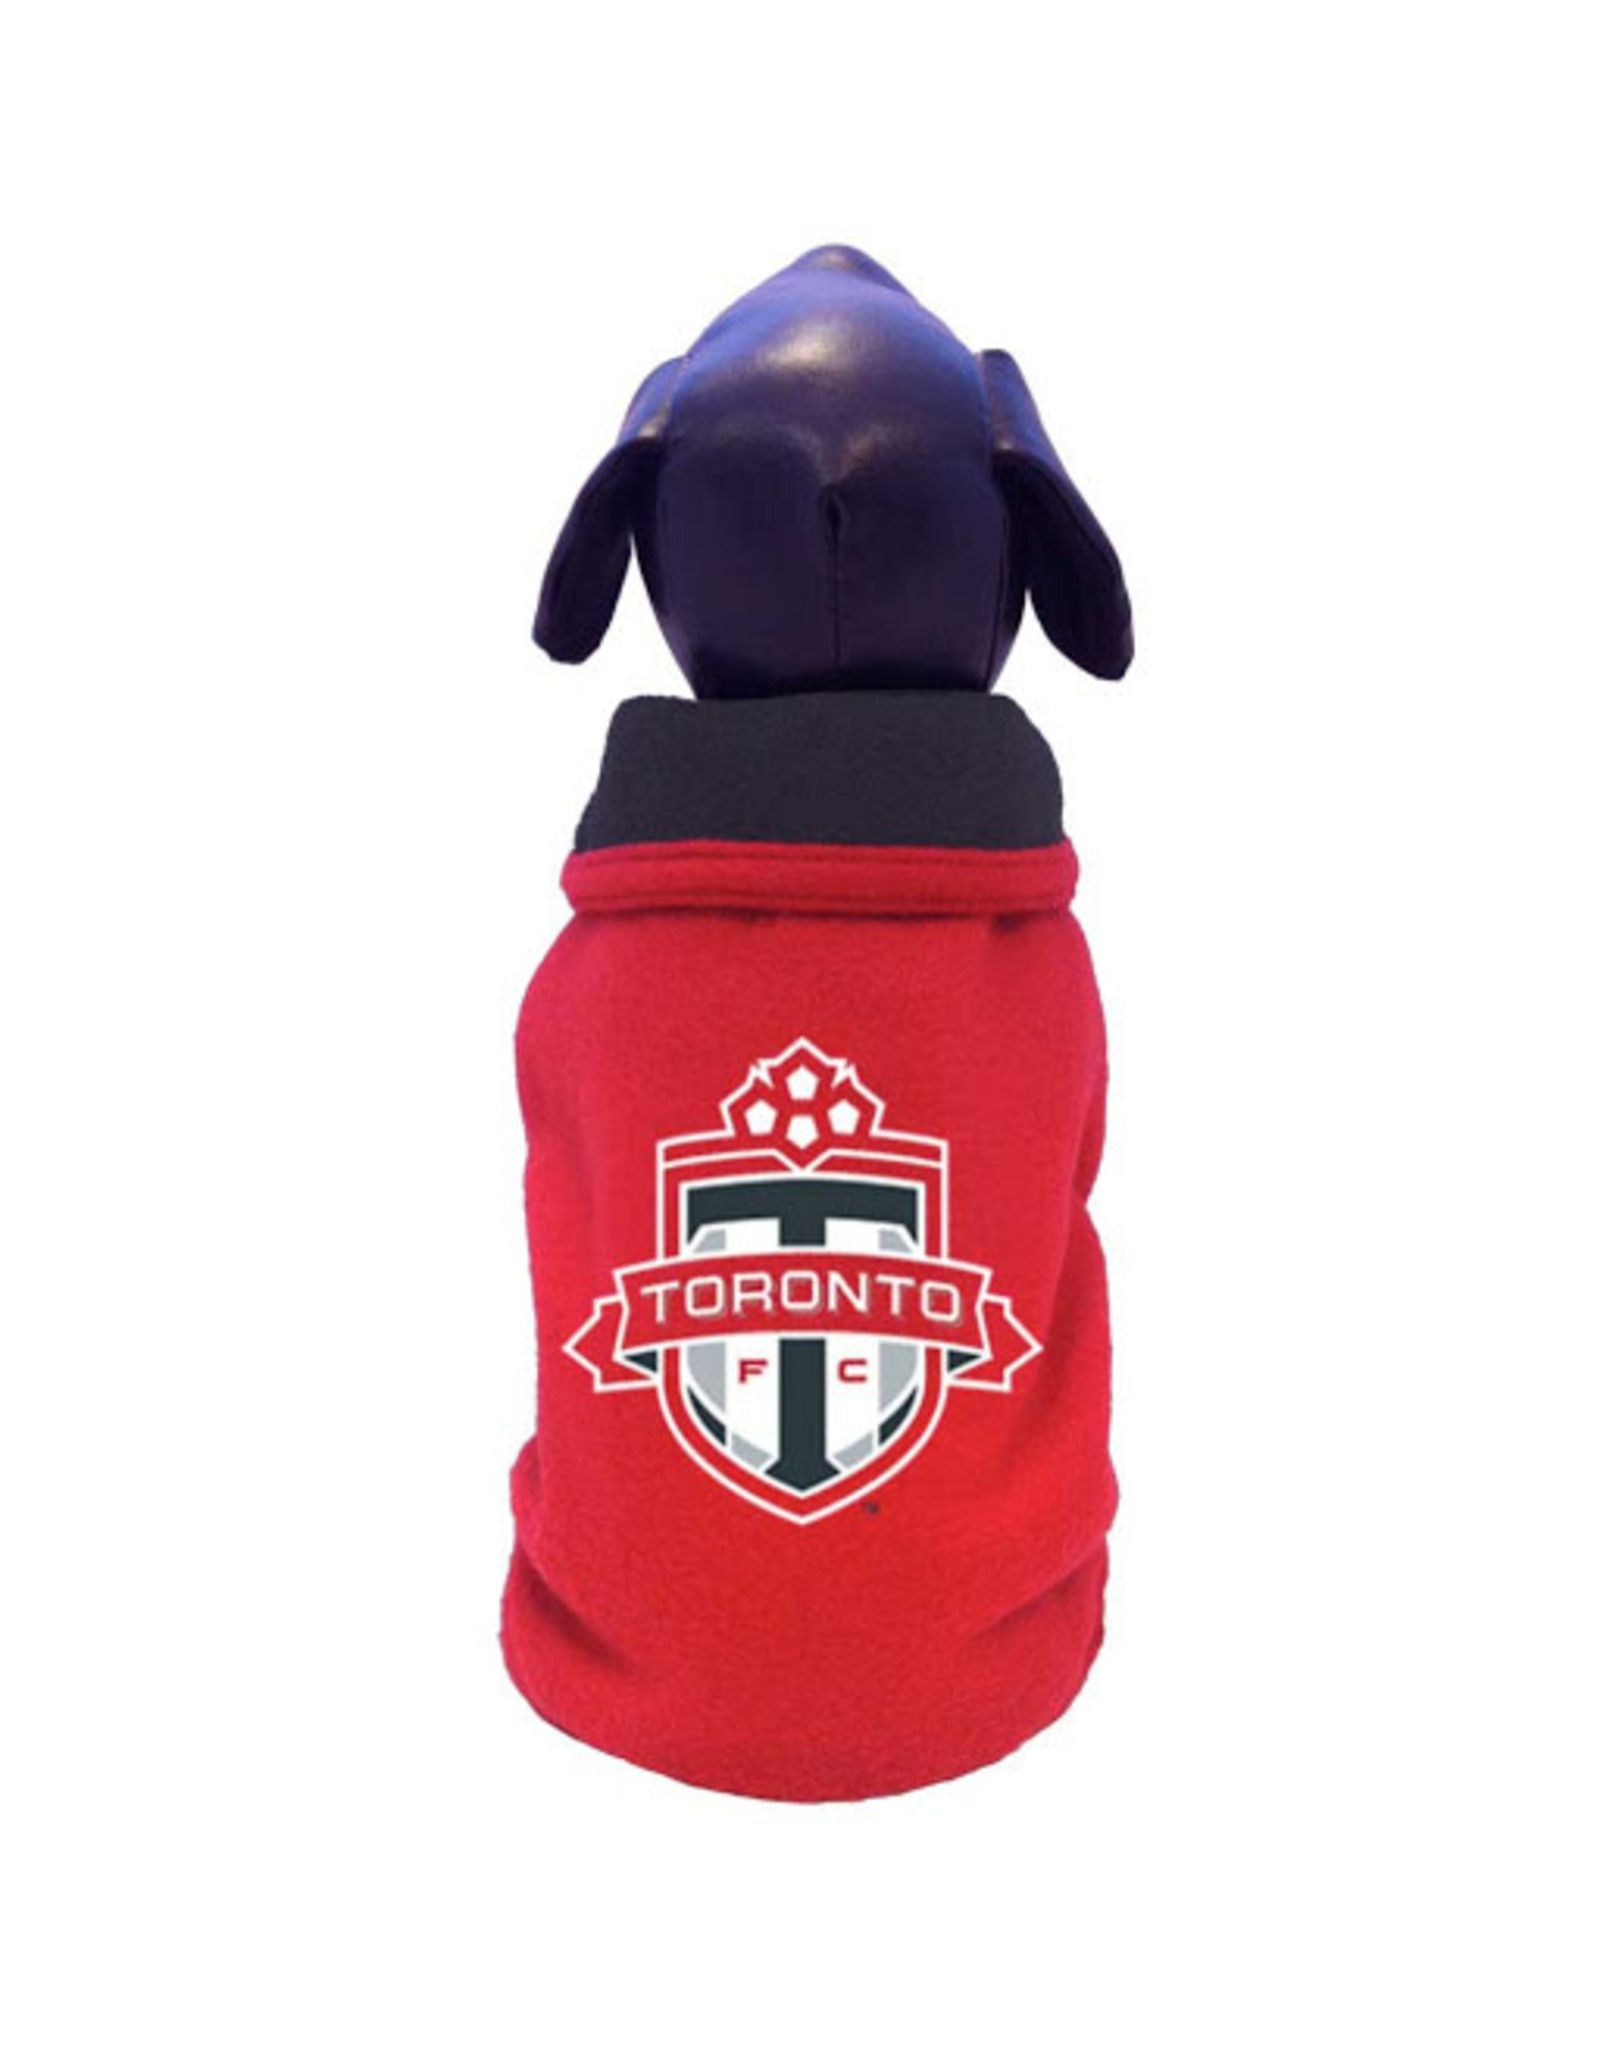 All Star Dogs All Star TFC JERSEY